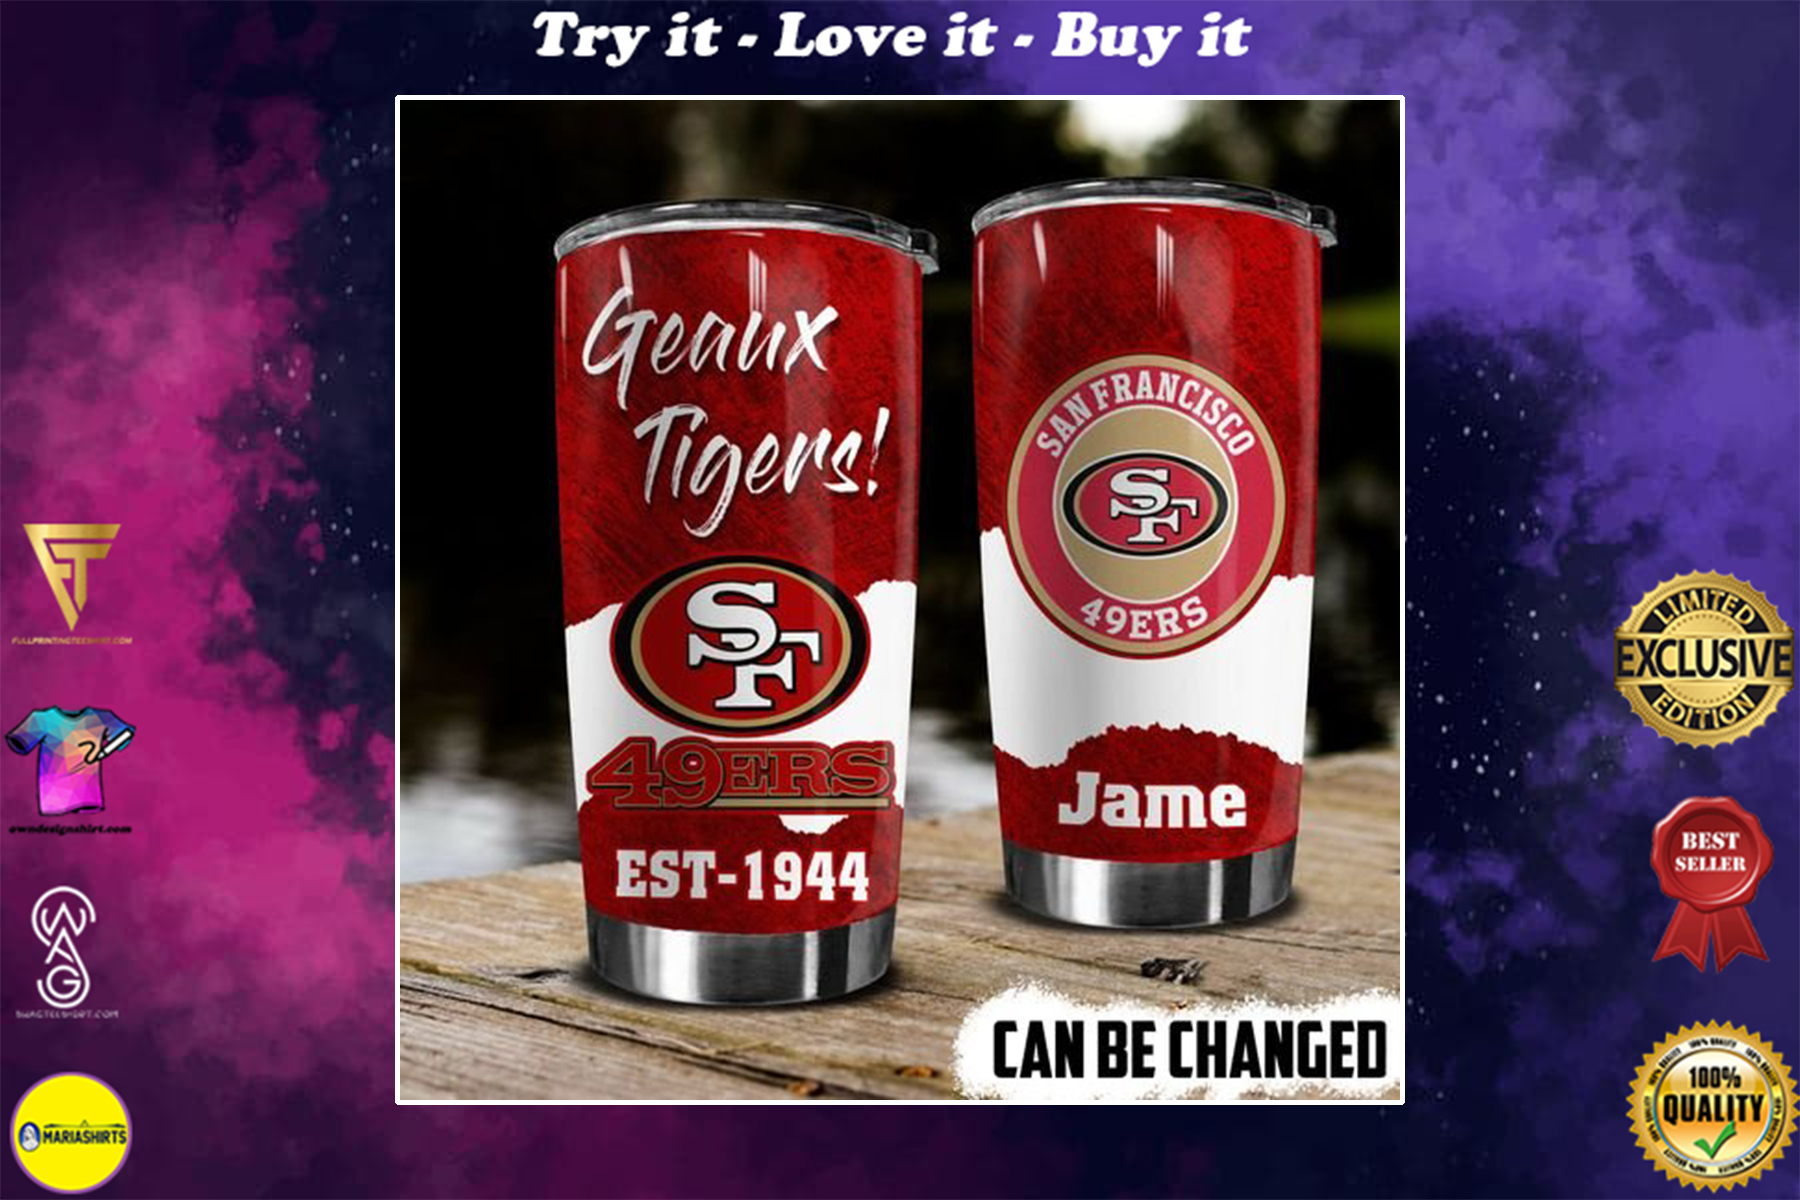 personalized name geaux tigers san francisco 49ers tumbler